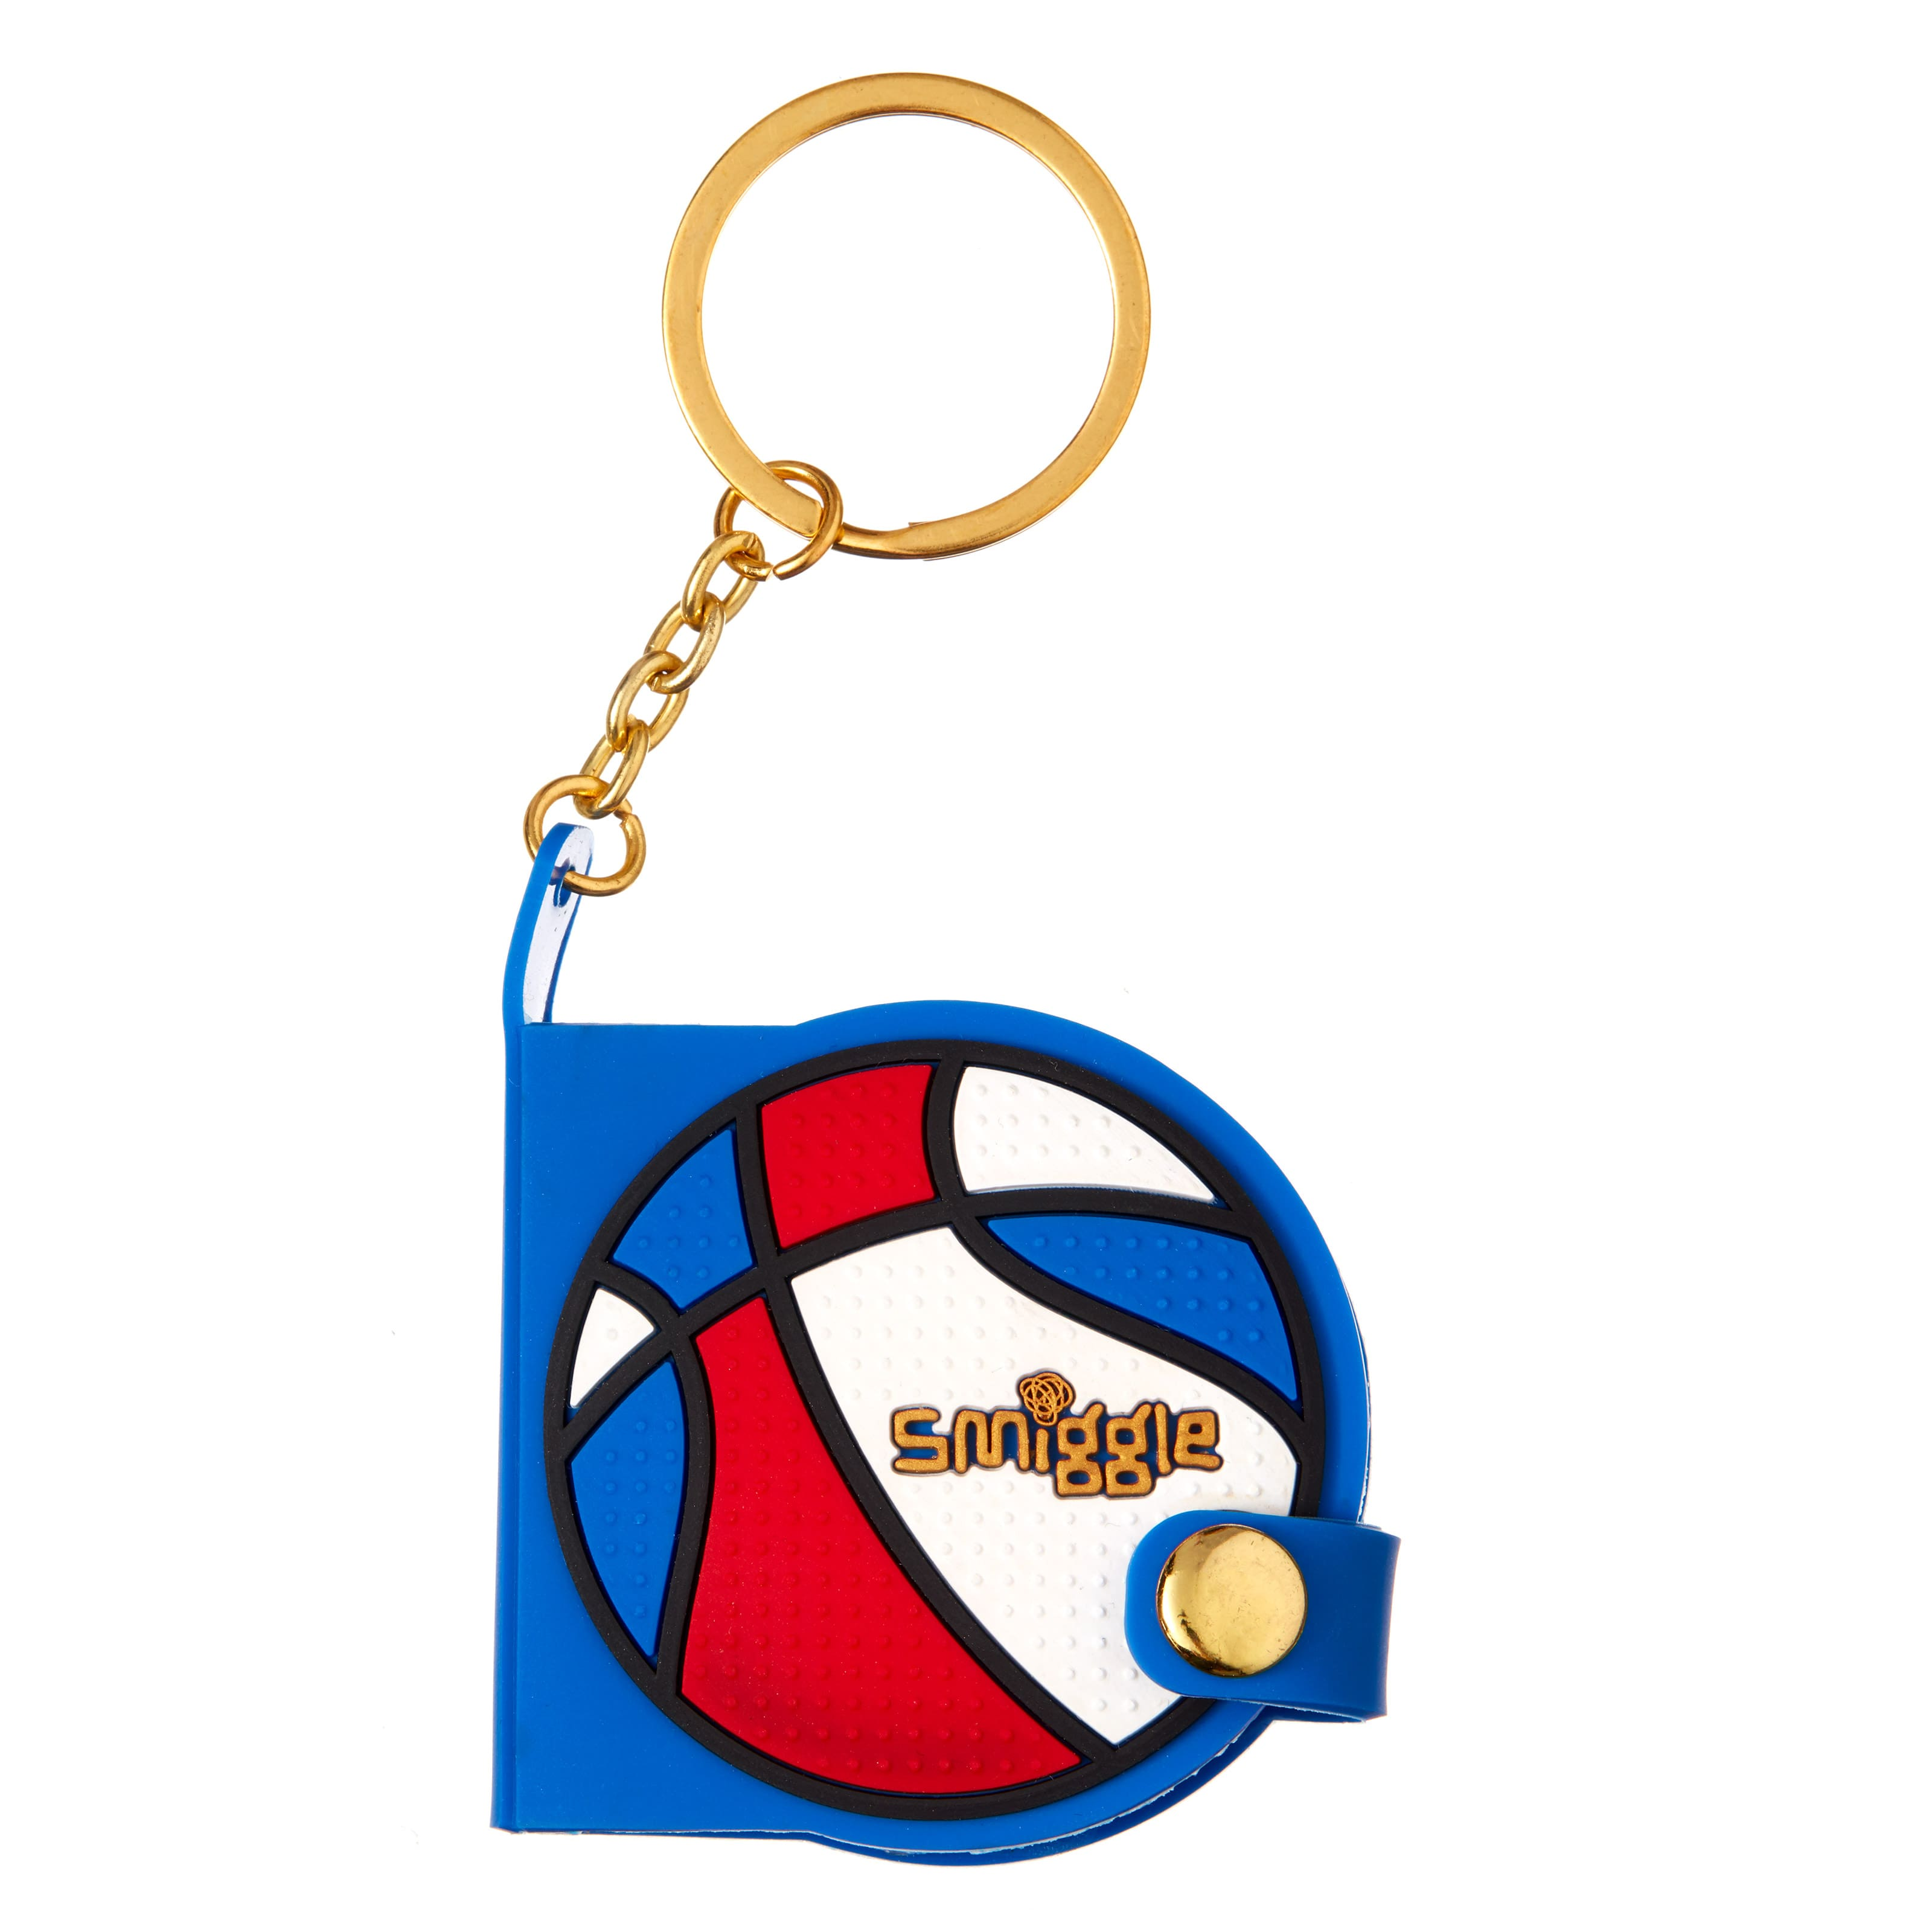 Bball Tiny Notebook Keyring